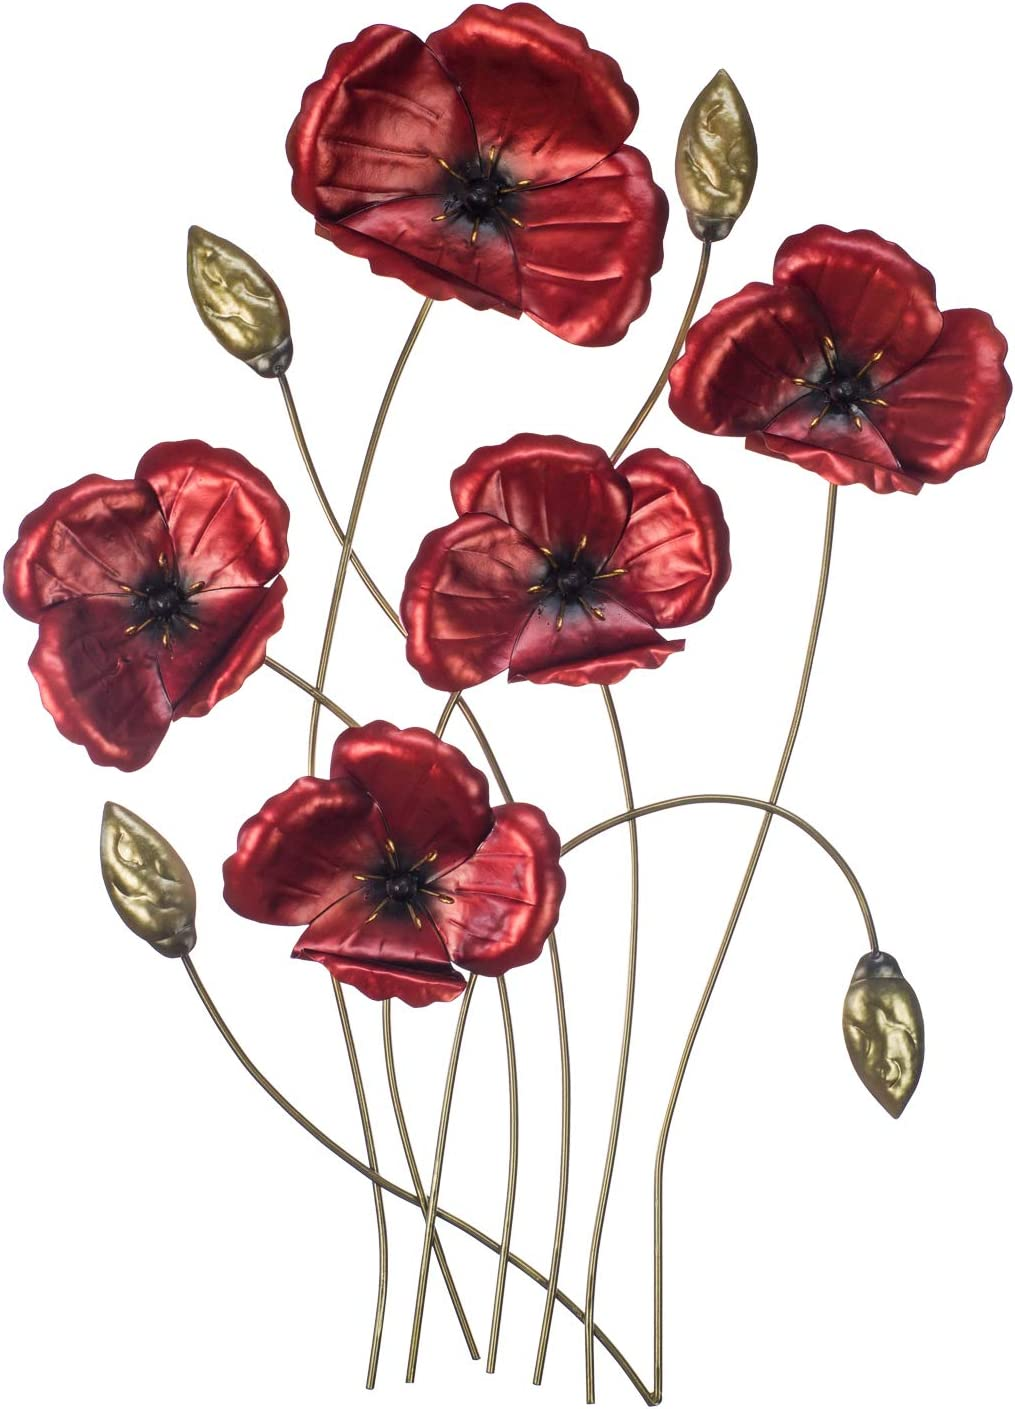 """The Creative Critters Poppy Wall Decor - Perfect for That Special Occasion Gift - 3D Metal Wall Art Design - Hand-Painted -23.5"""" x 17""""- Home Decoration"""